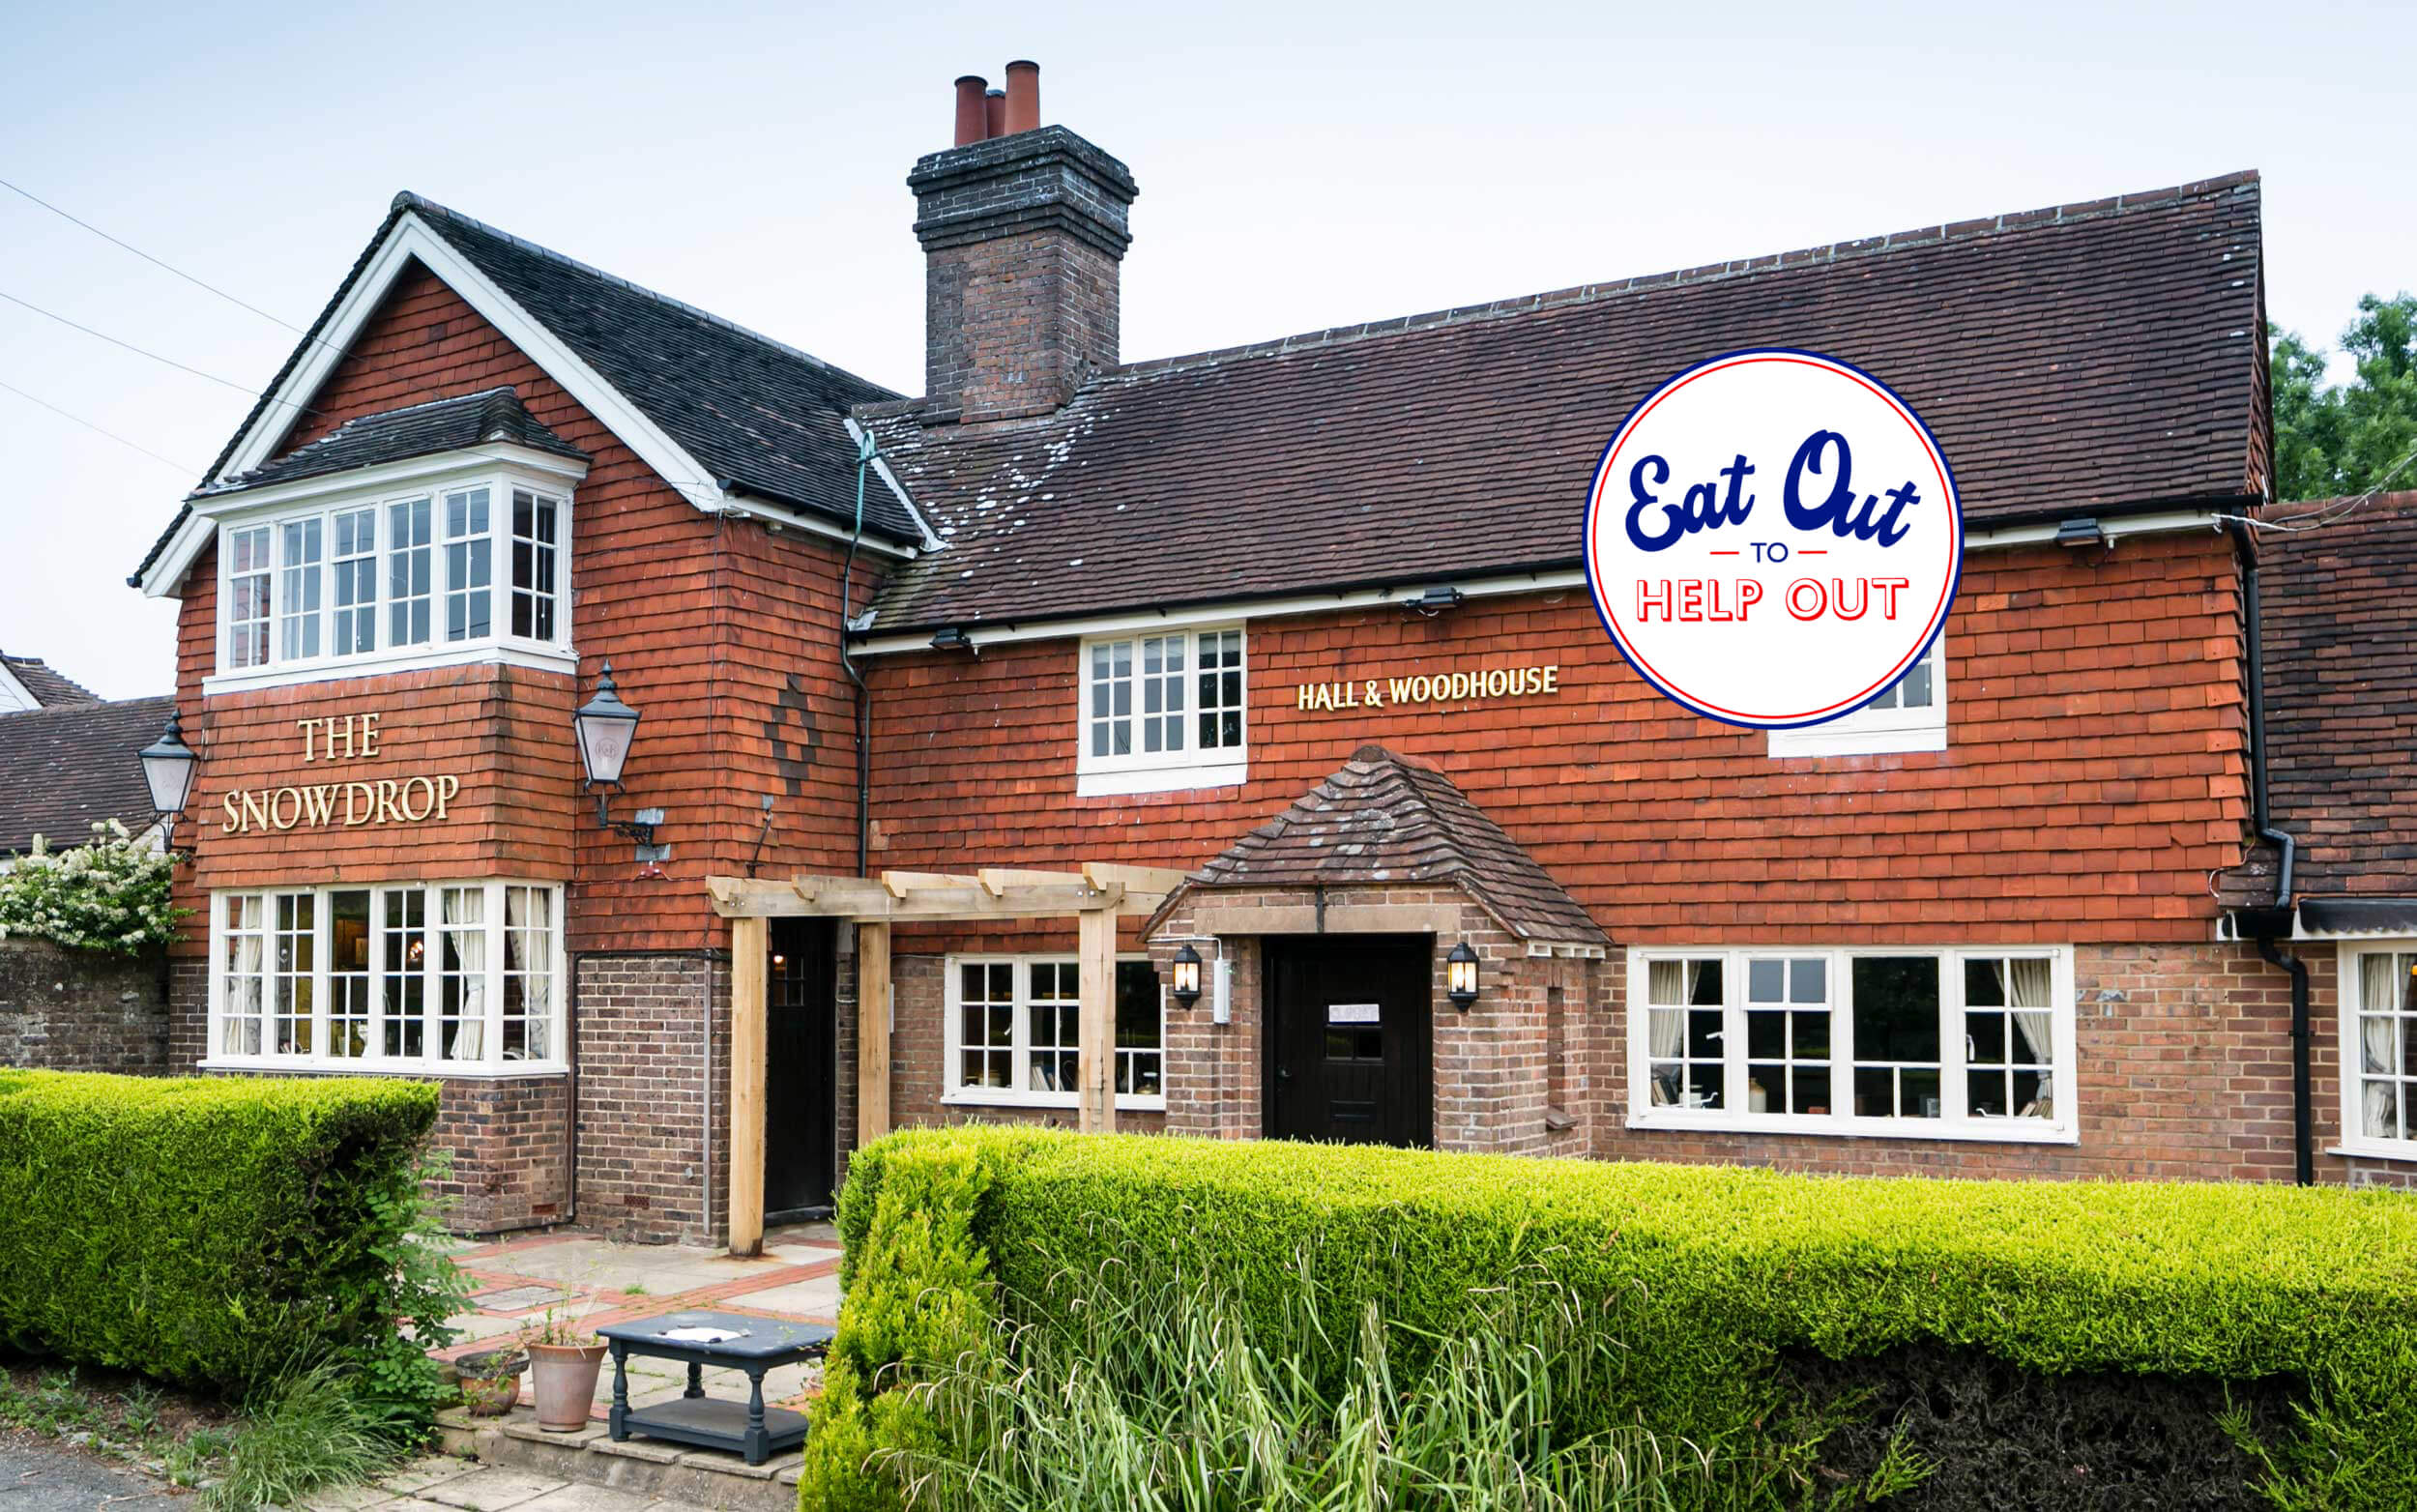 The Snowdrop Inn is happy to be a part of the Eat Out to Help Out promotion